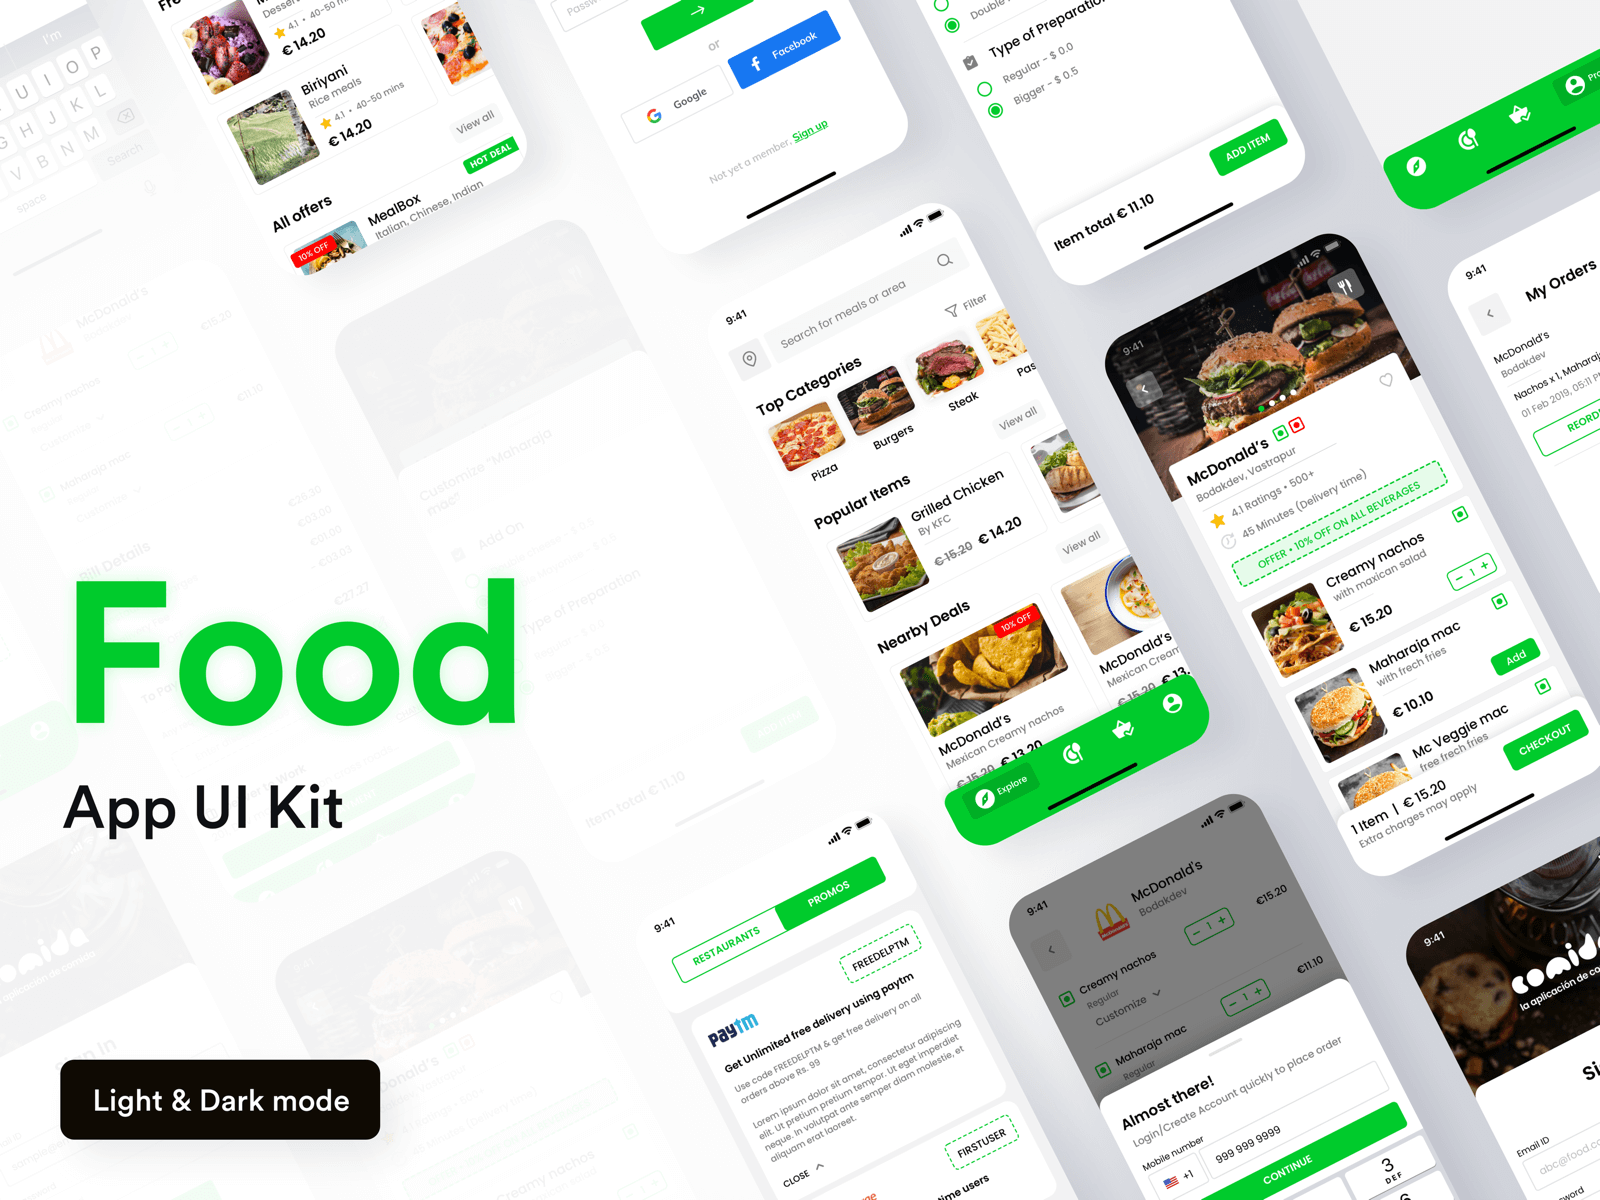 Different app screens for a food order app